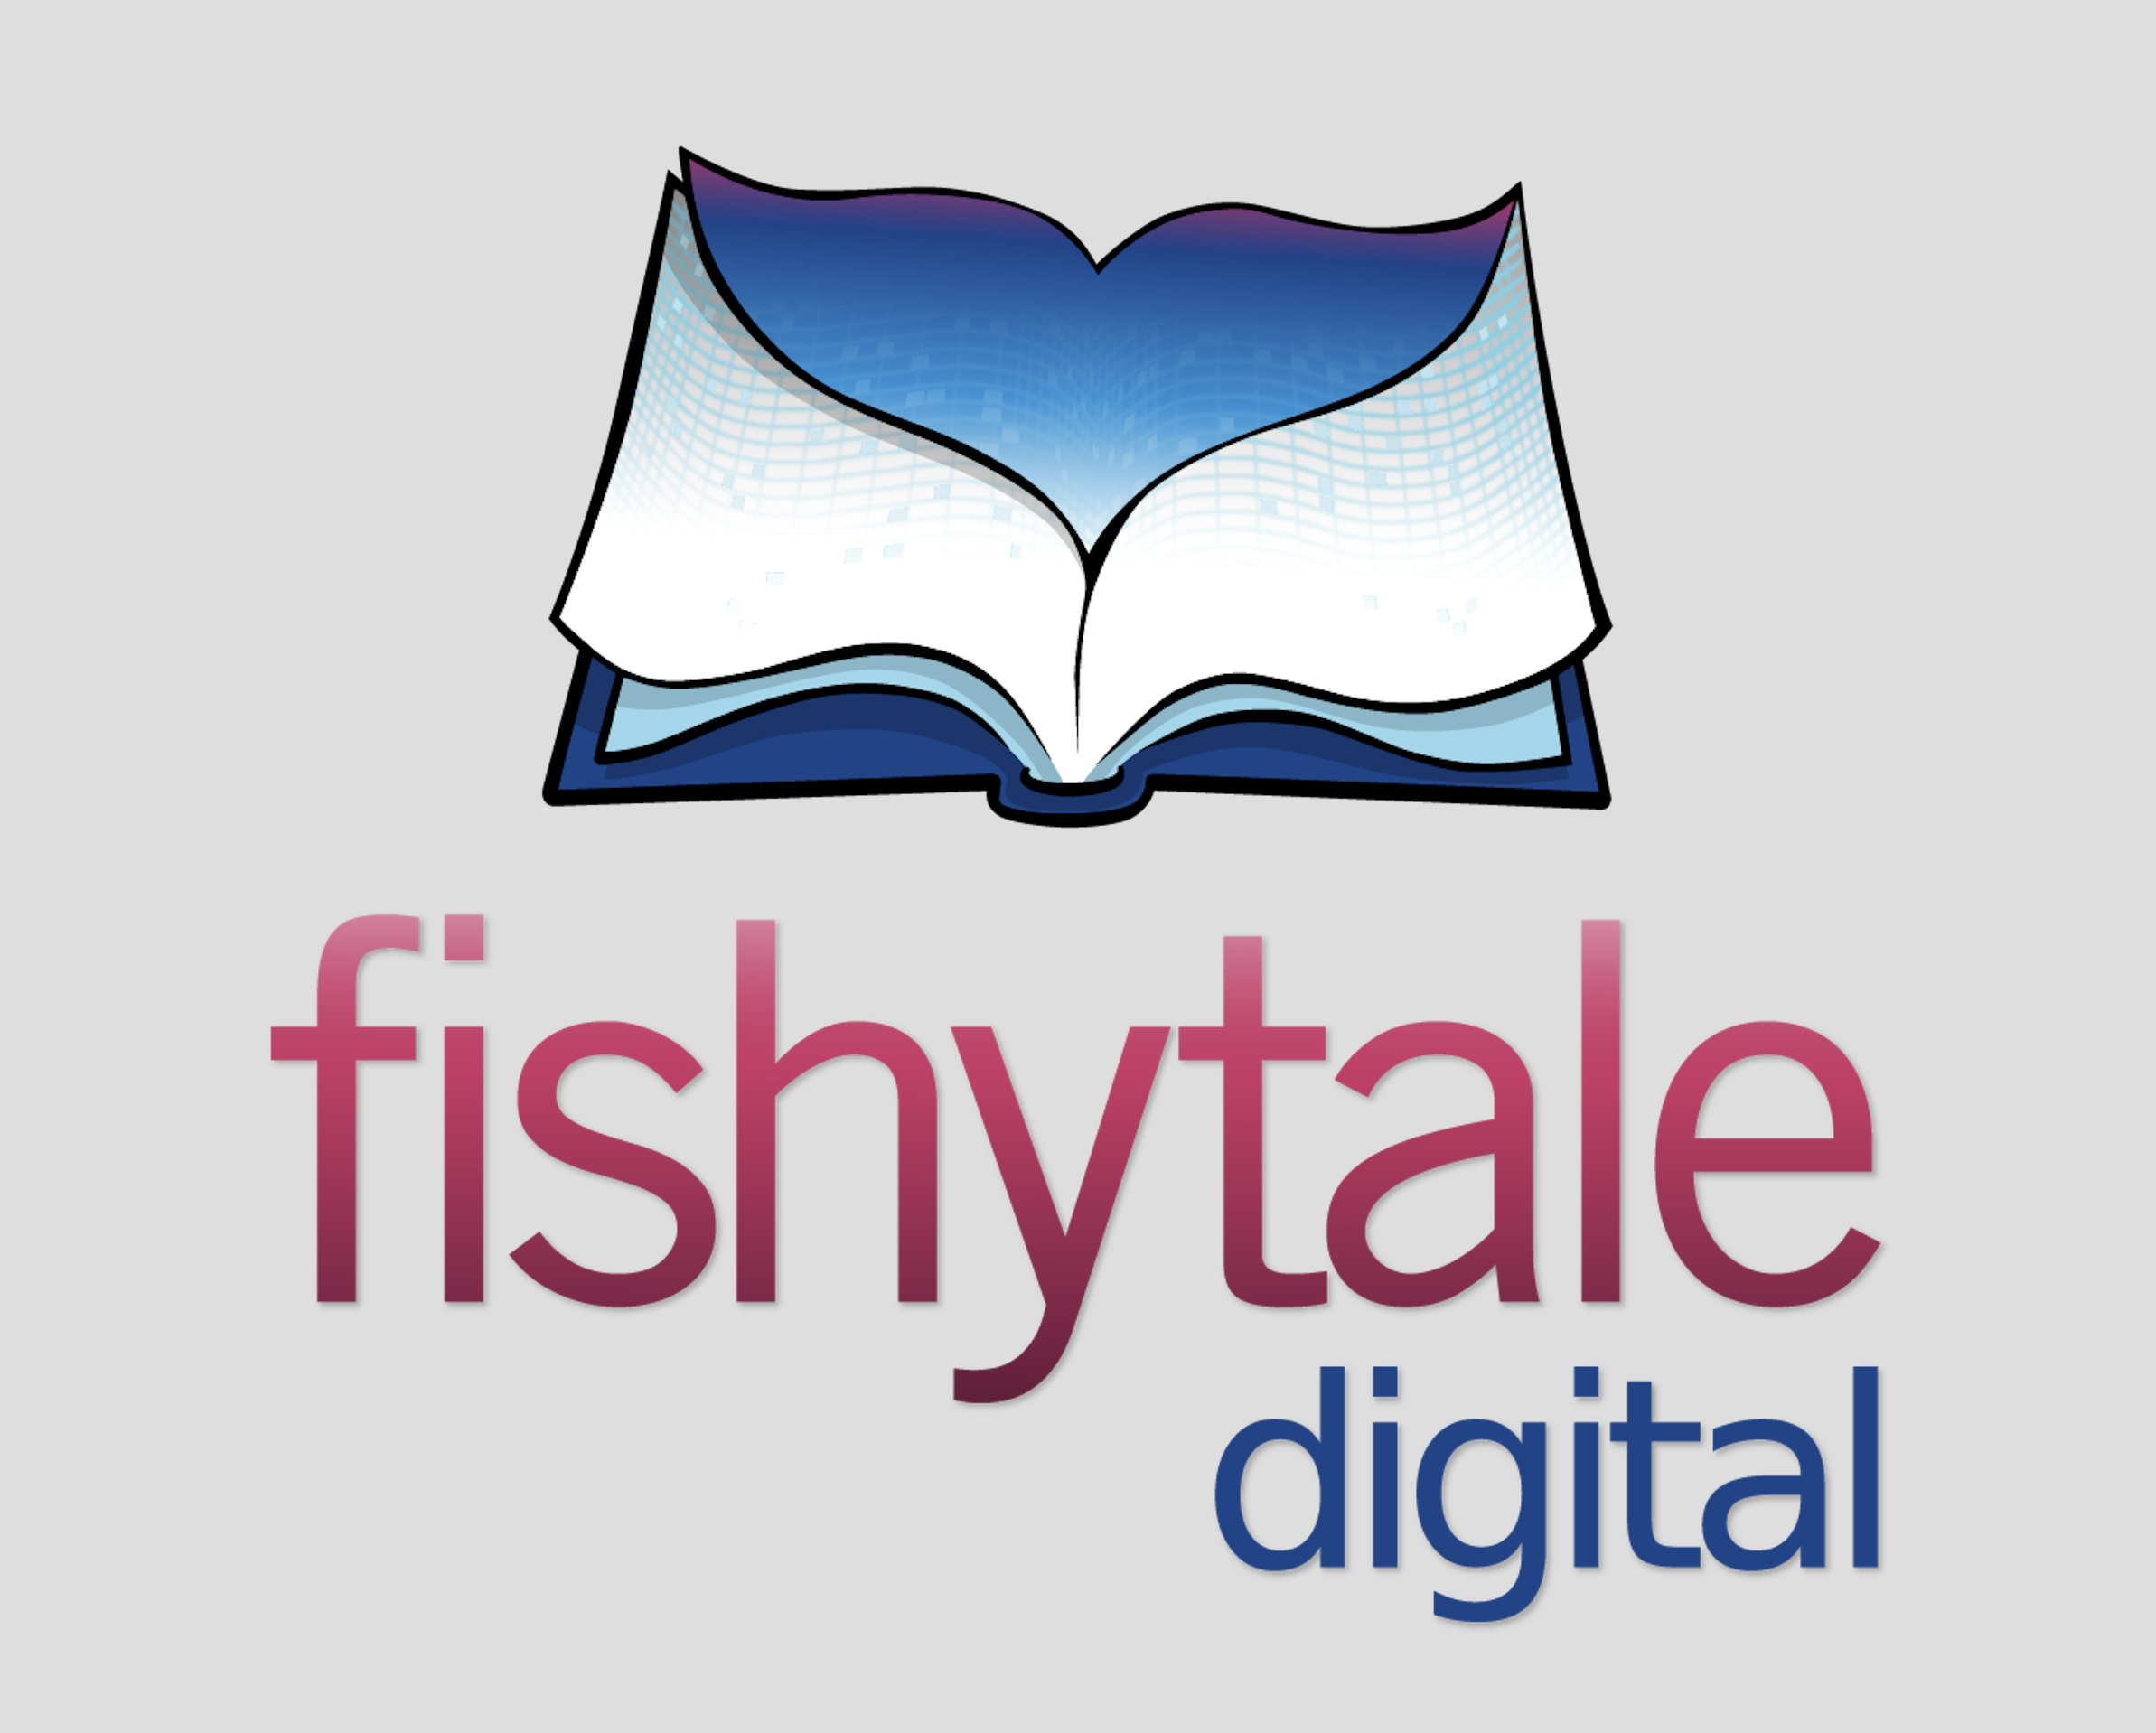 FishyTale Digital signs author Jen Tucker current titles and slated to pen 50 more books.